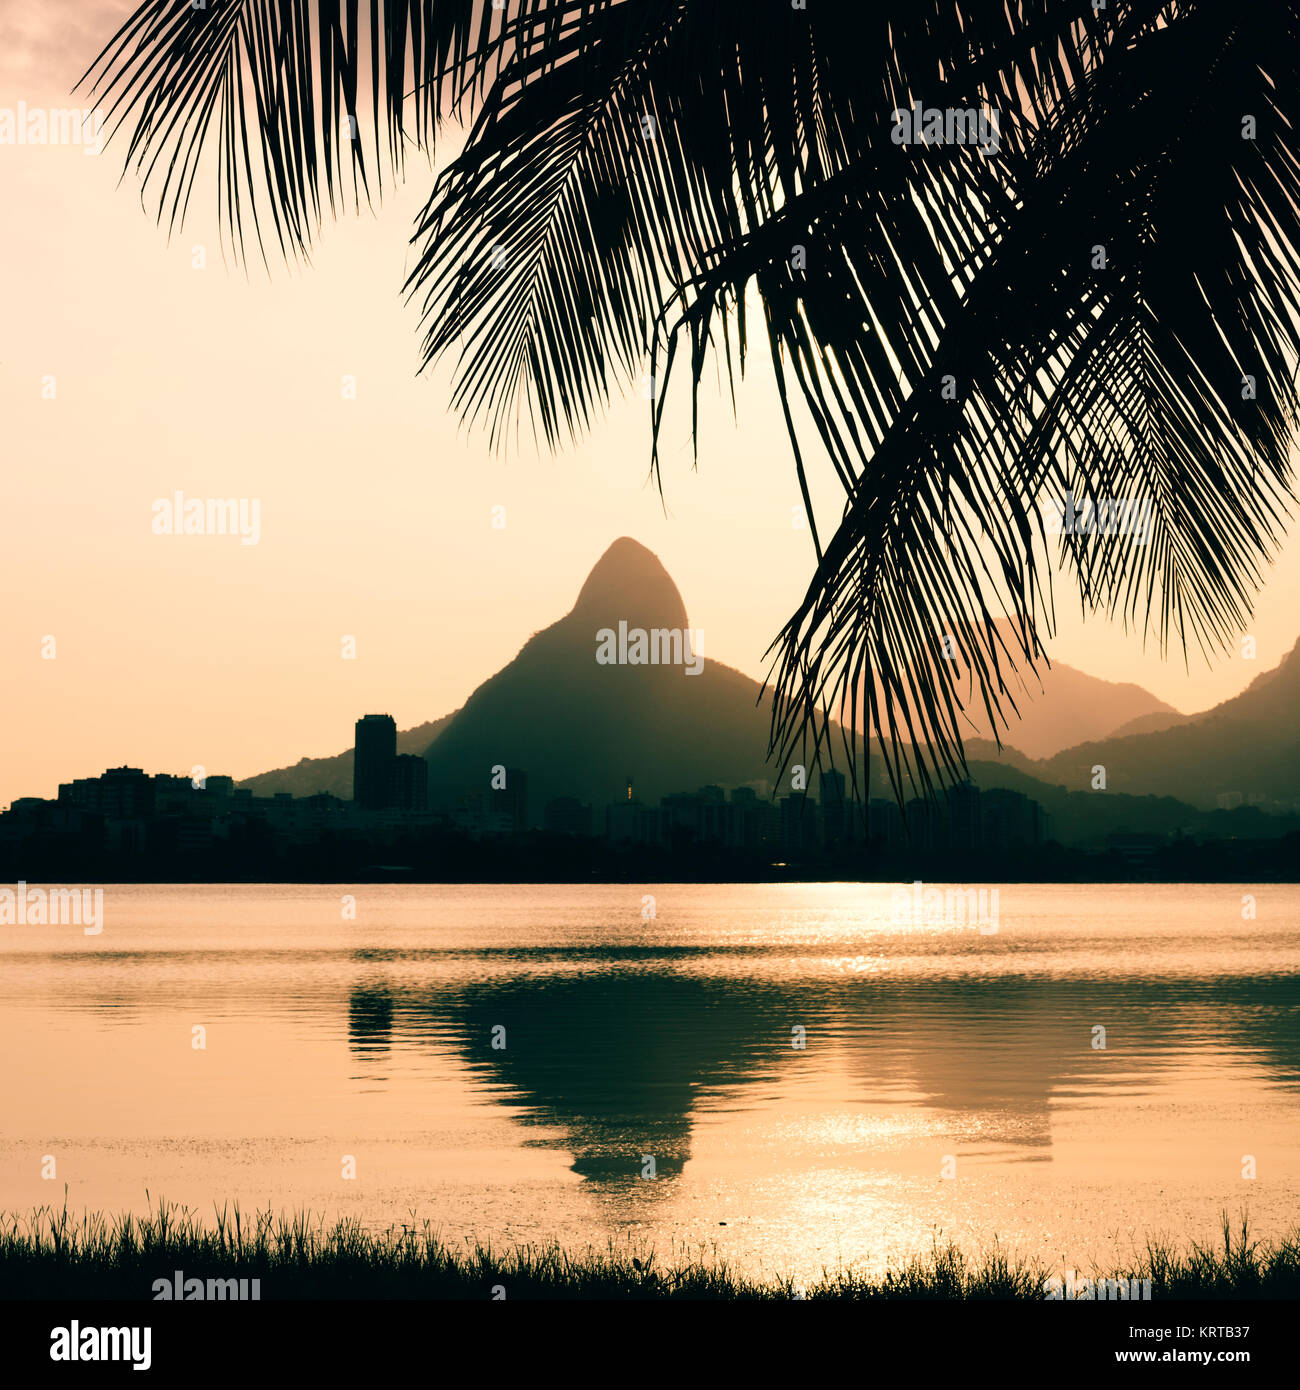 morro-dois-irmaoes-seen-from-lagoa-rodrigo-de-freitas-at-sunset-in-KRTB37.jpg